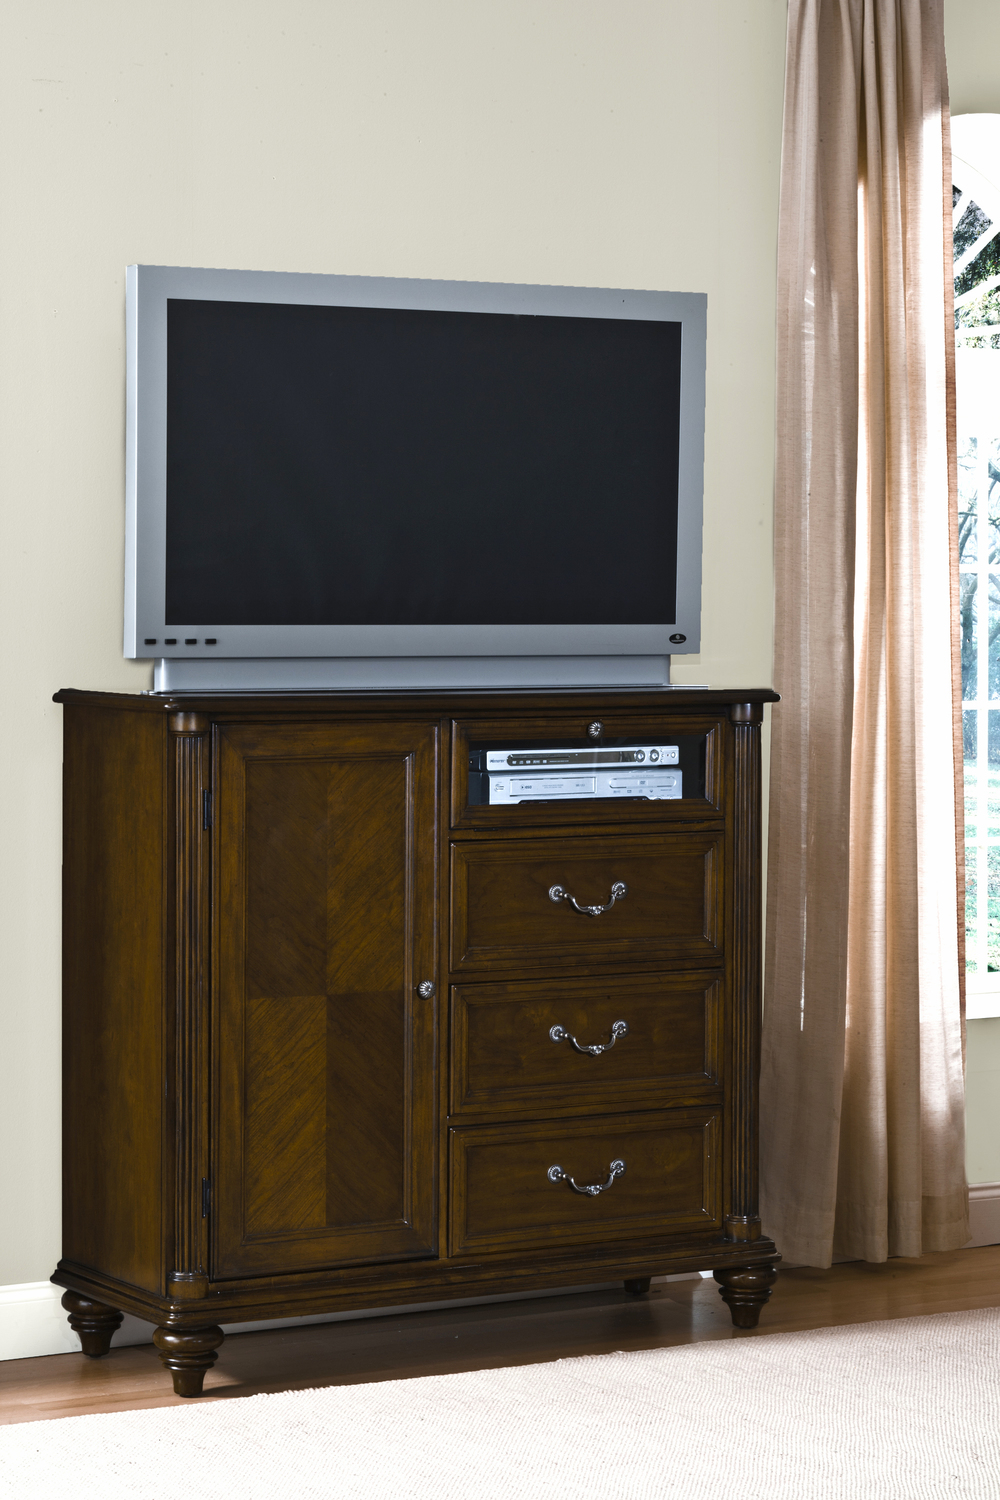 Entertainment furniture with a door, three drawers and open space for electronics